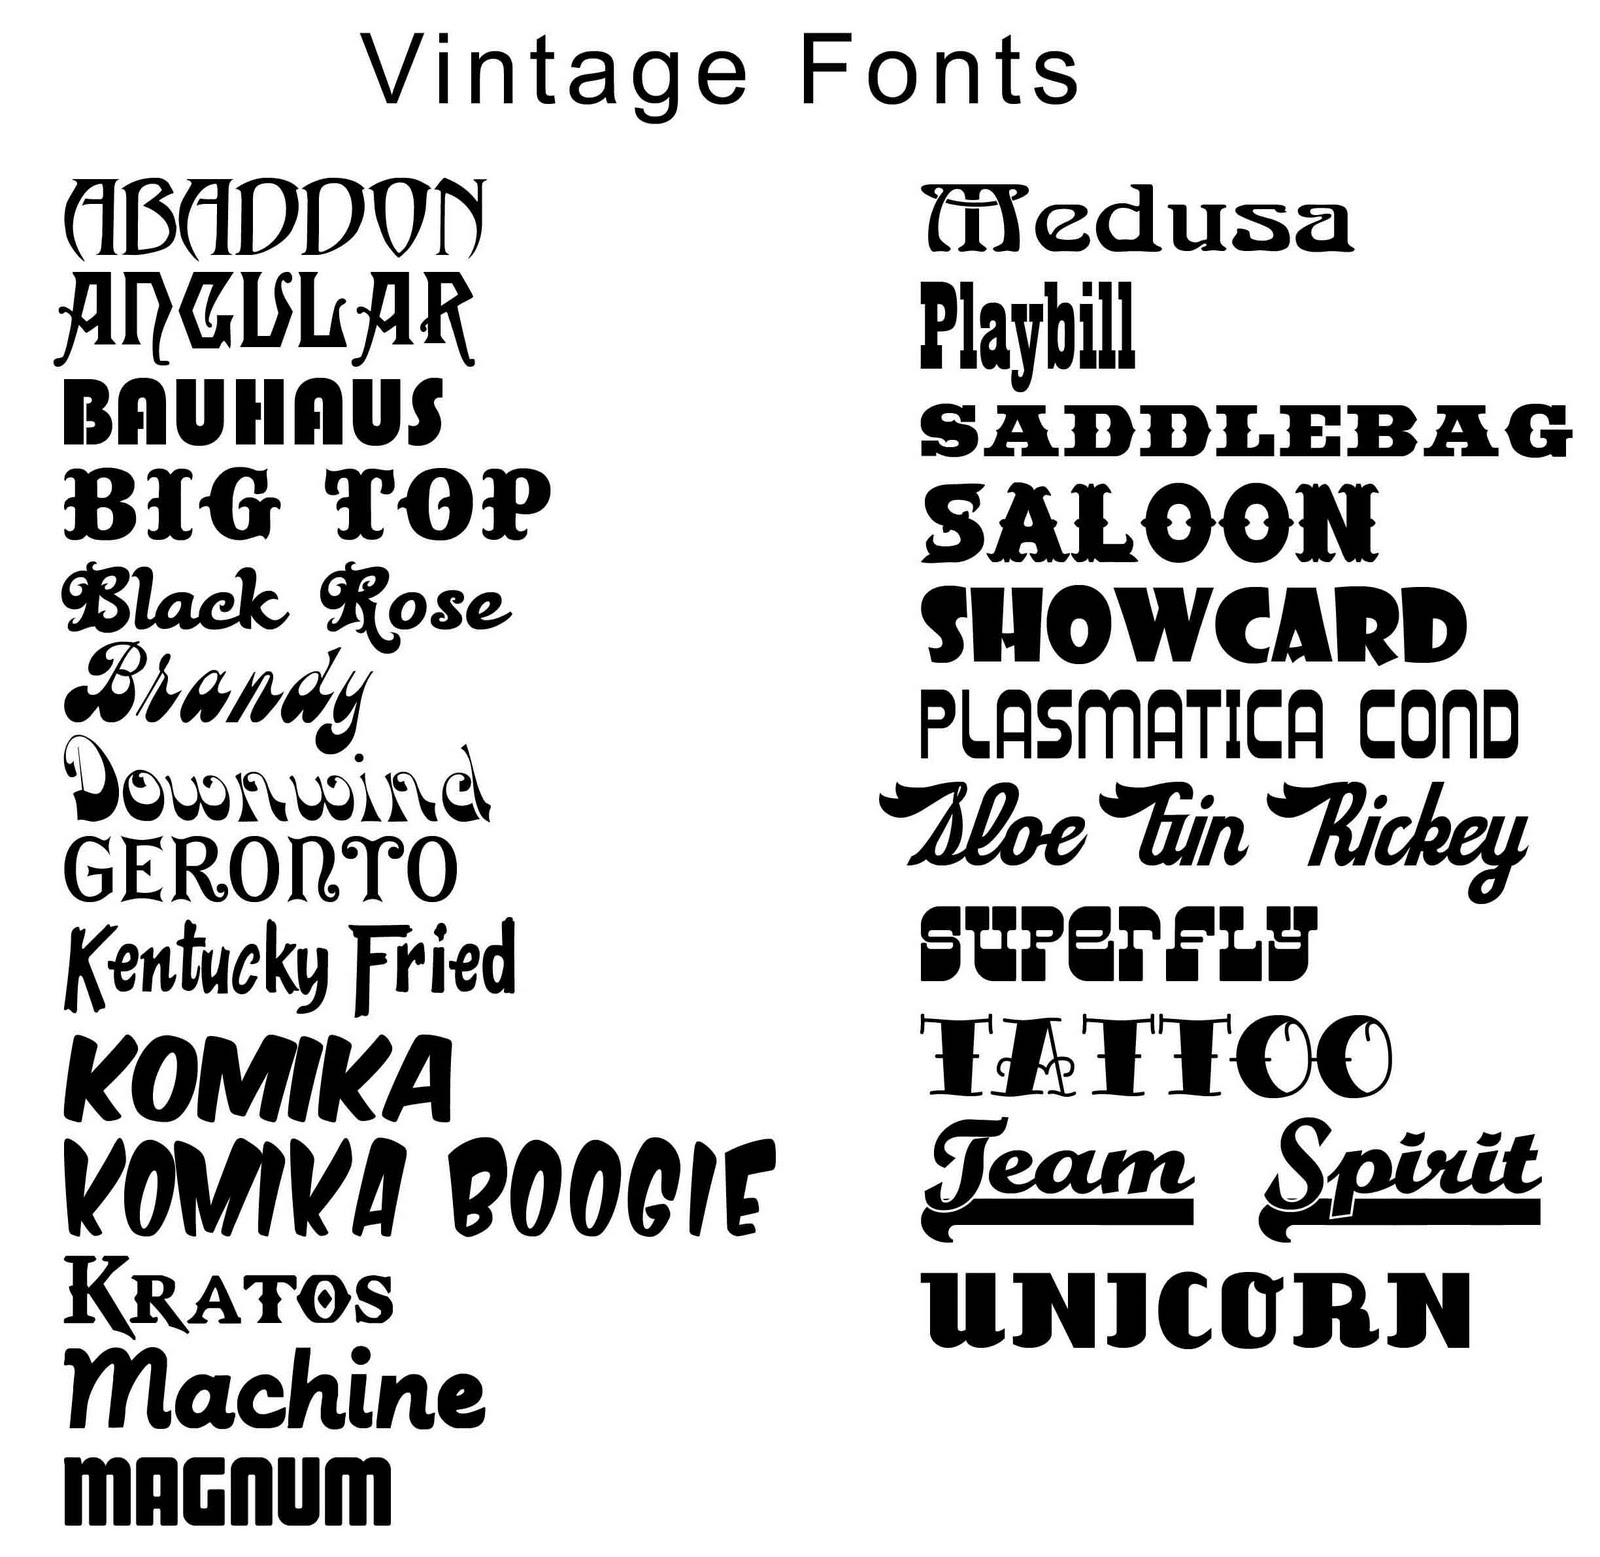 Rantin' Razor: A Million Fonts And Counting